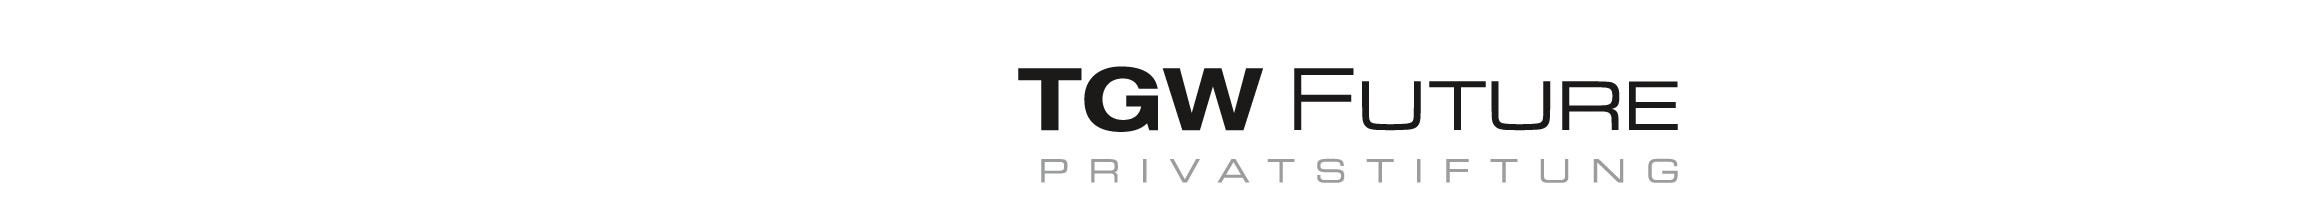 TGW Future Privatstiftung